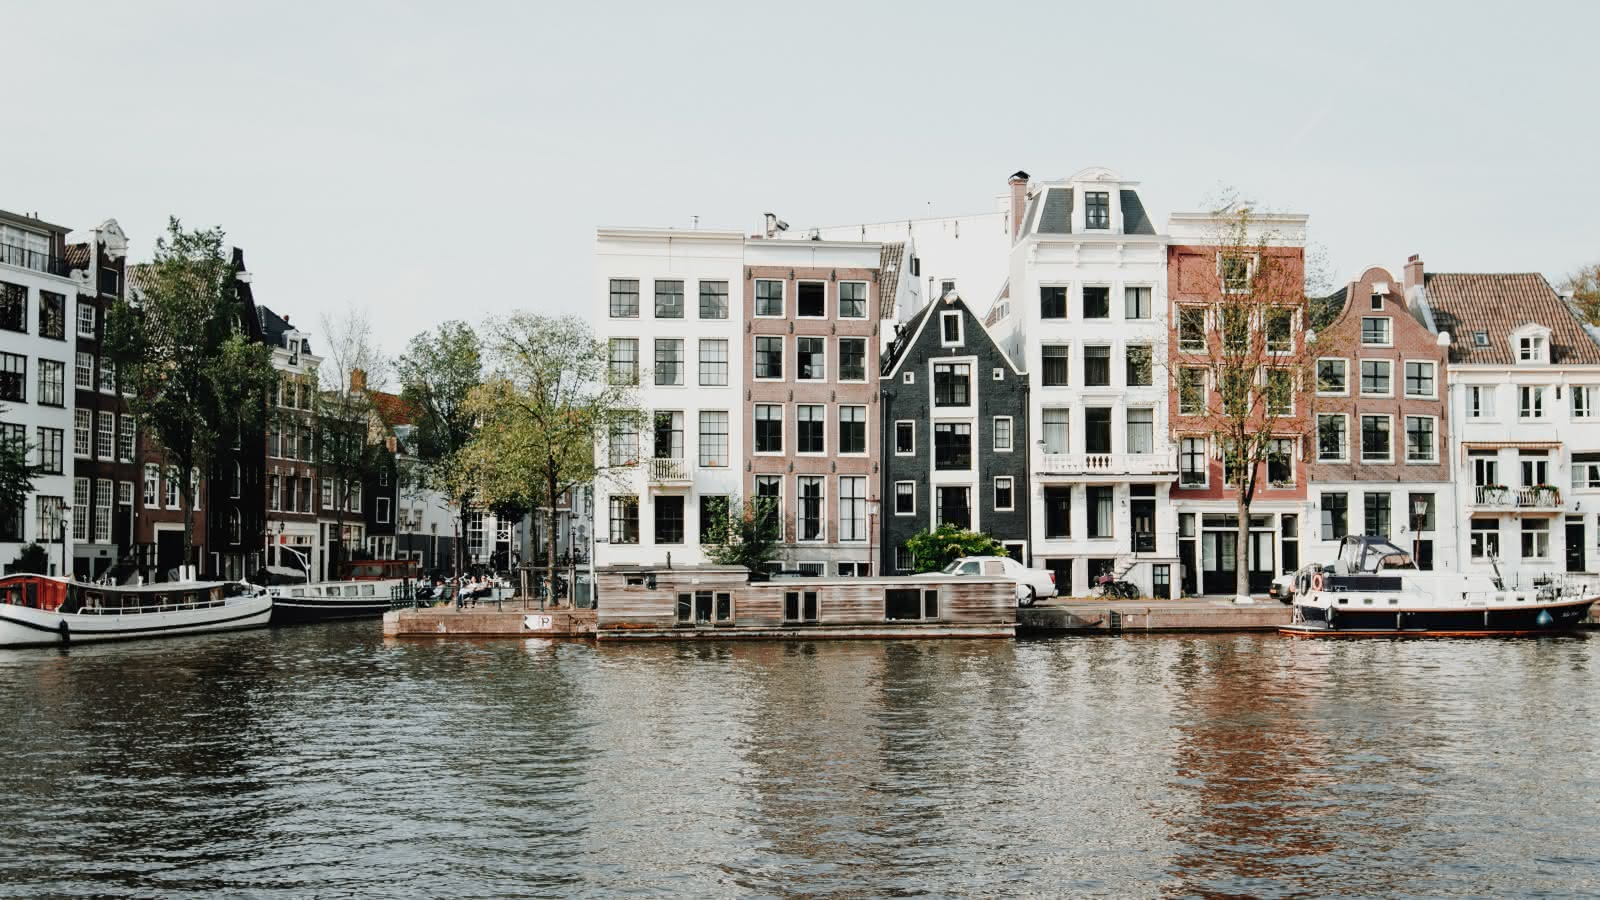 Beautiful views of Amsterdam from the canals